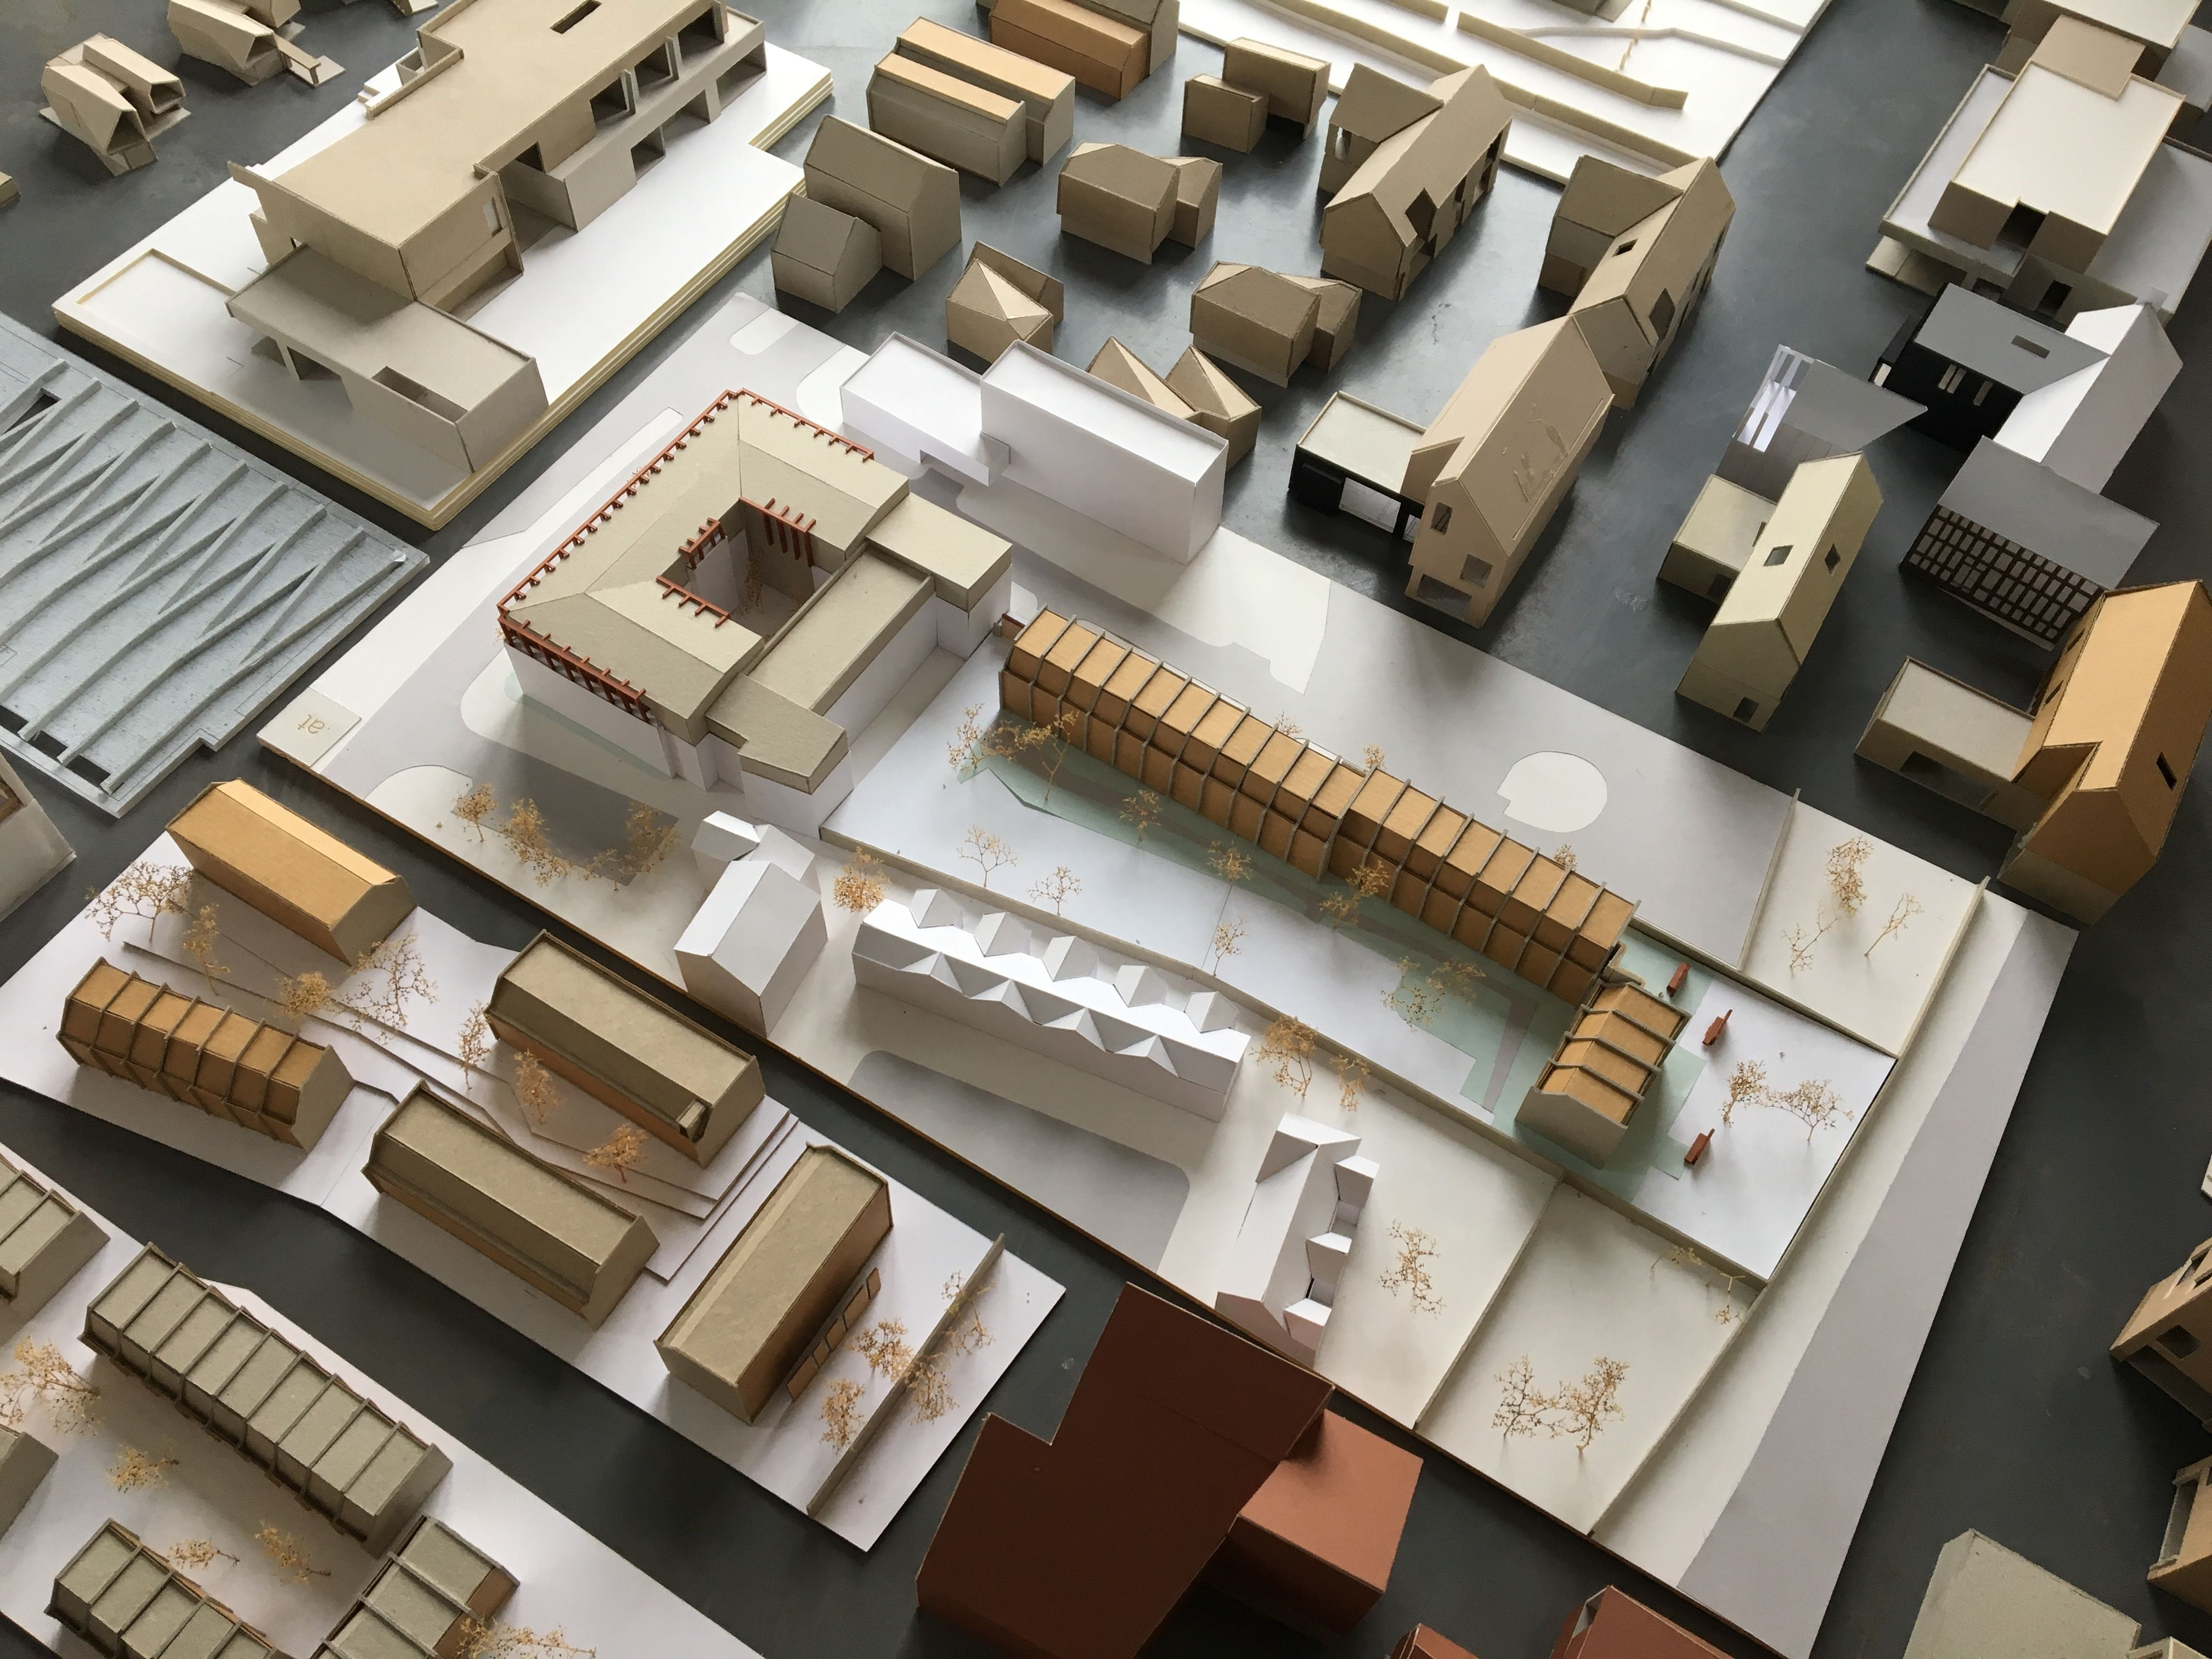 annabelle tugby architects collection of architectural models